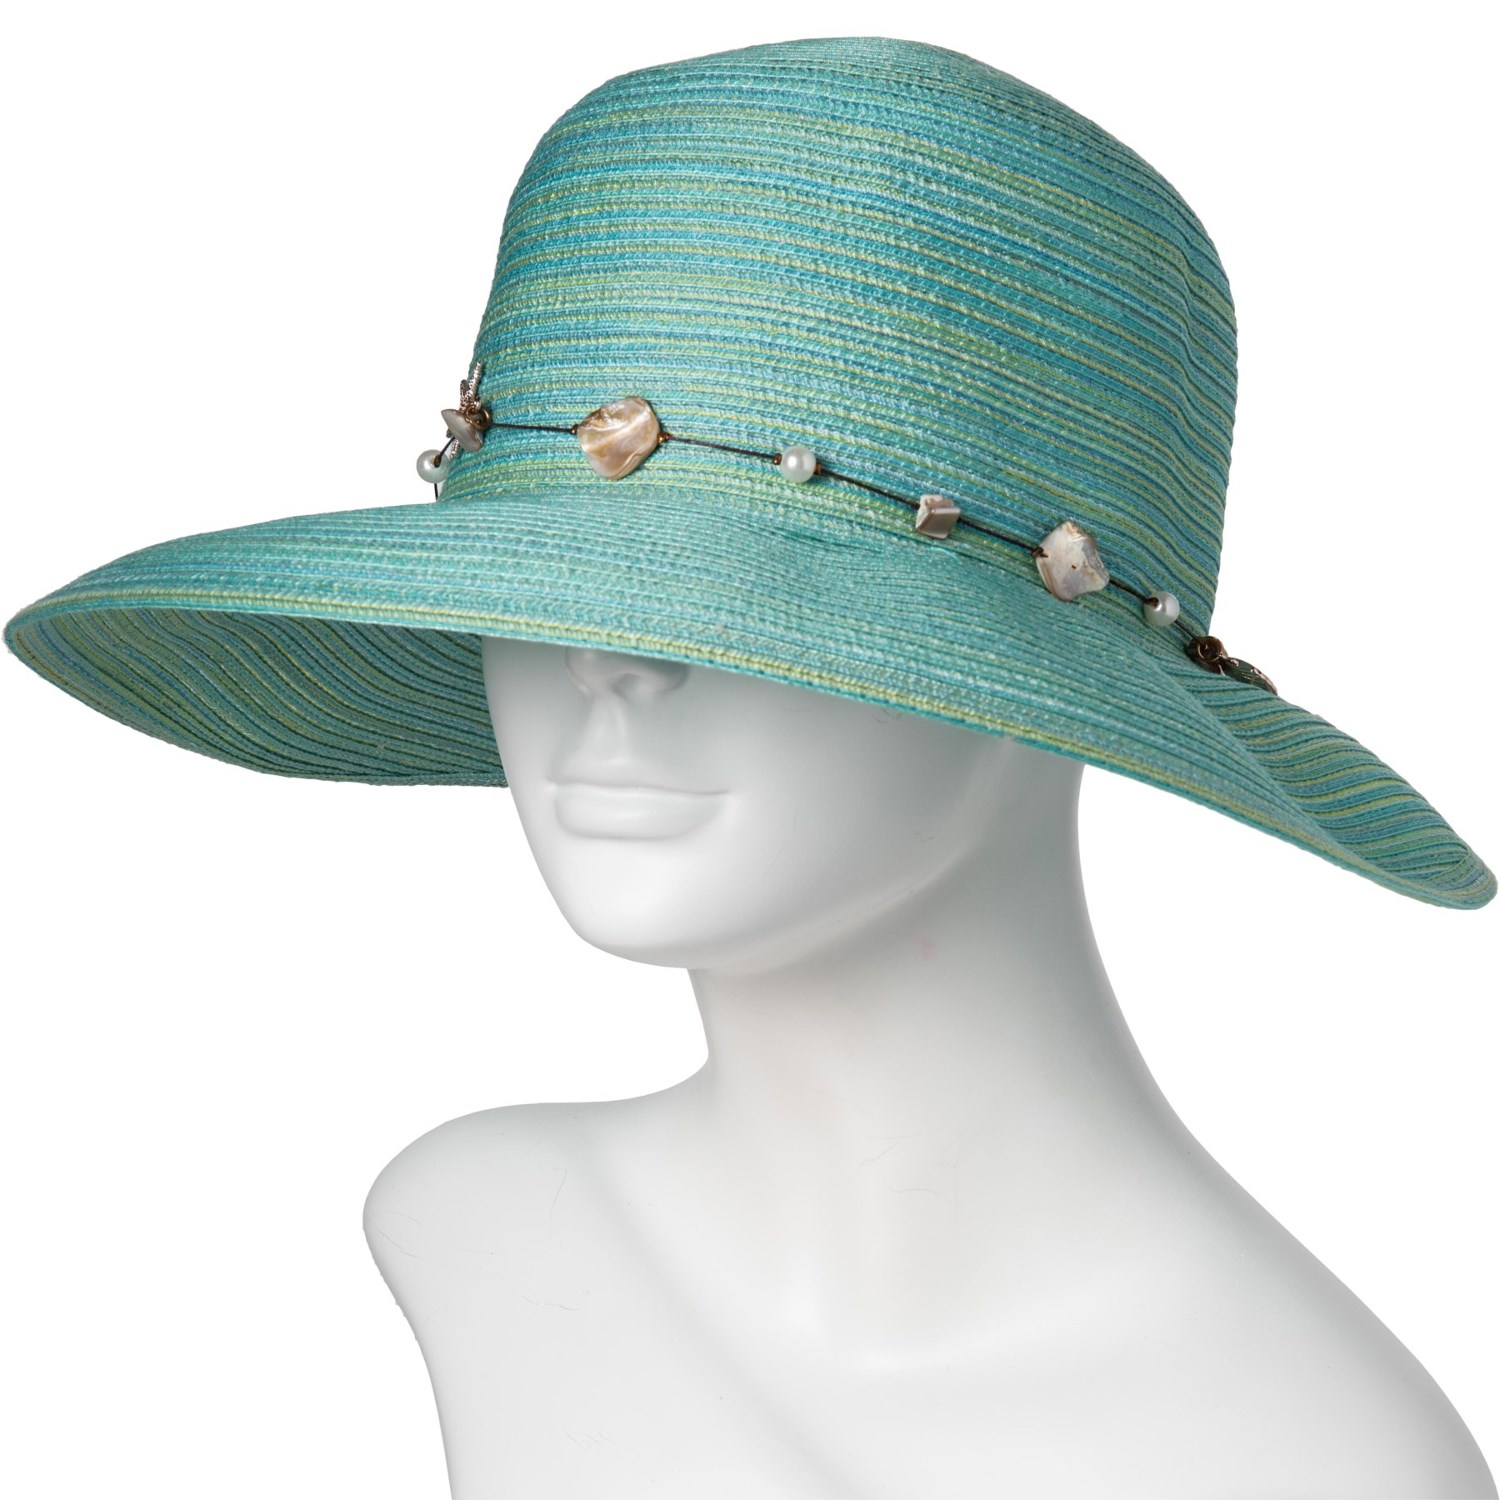 0880b3d7e9e74 Dorfman Pacific Face Saver Hat with Bead Trim (For Women) - Save 62%